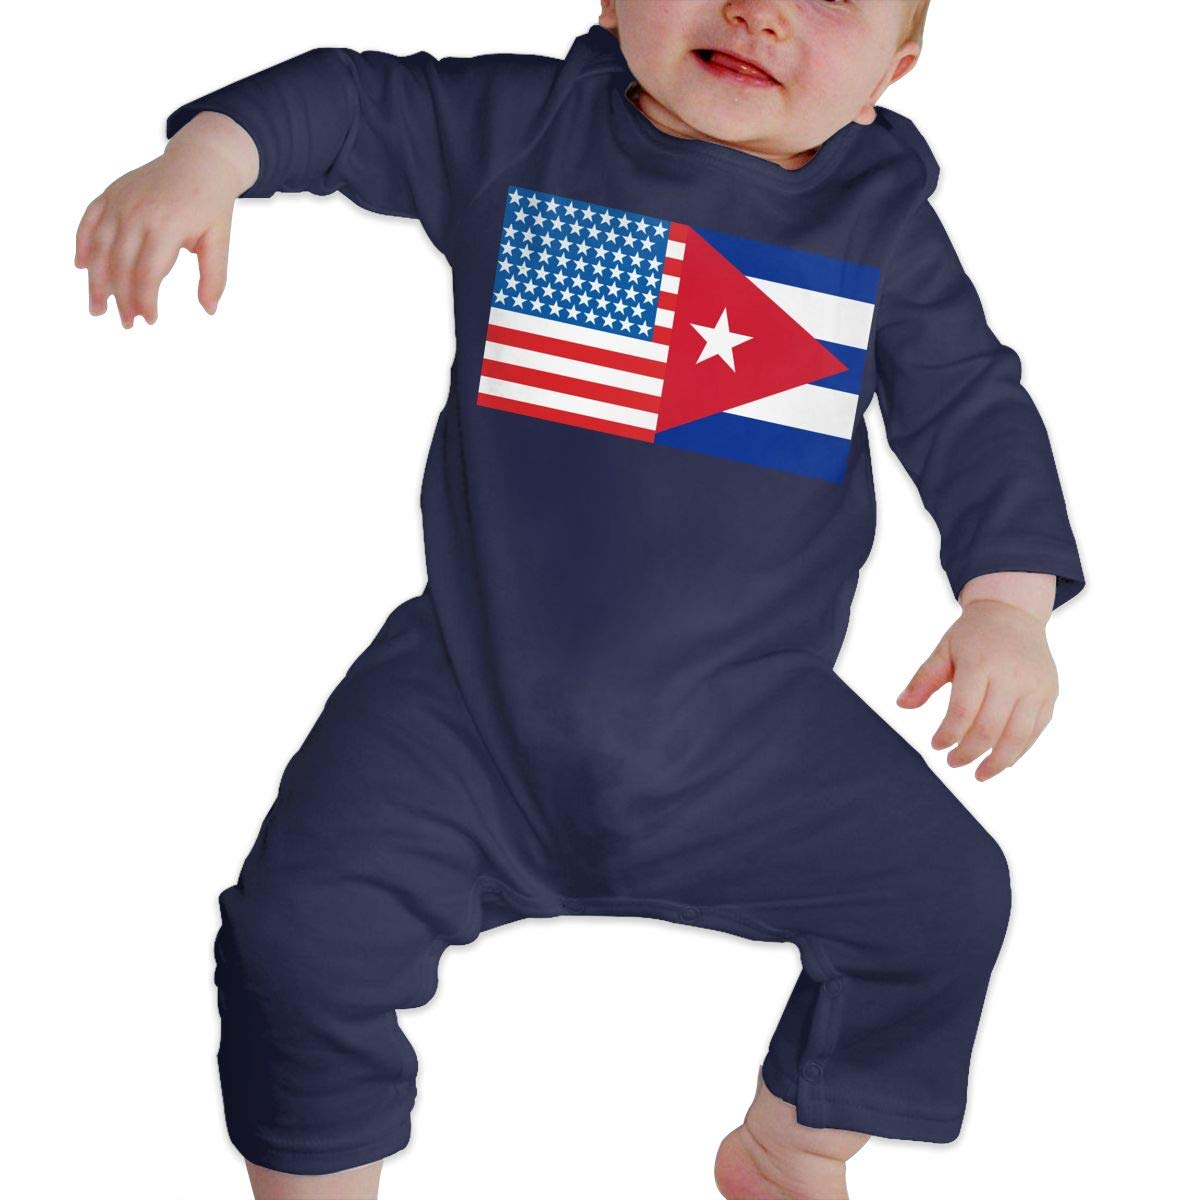 Mri-le1 Toddler Baby Boy Girl Bodysuits American Cuba Flag Infant Long Sleeve Romper Jumpsuit